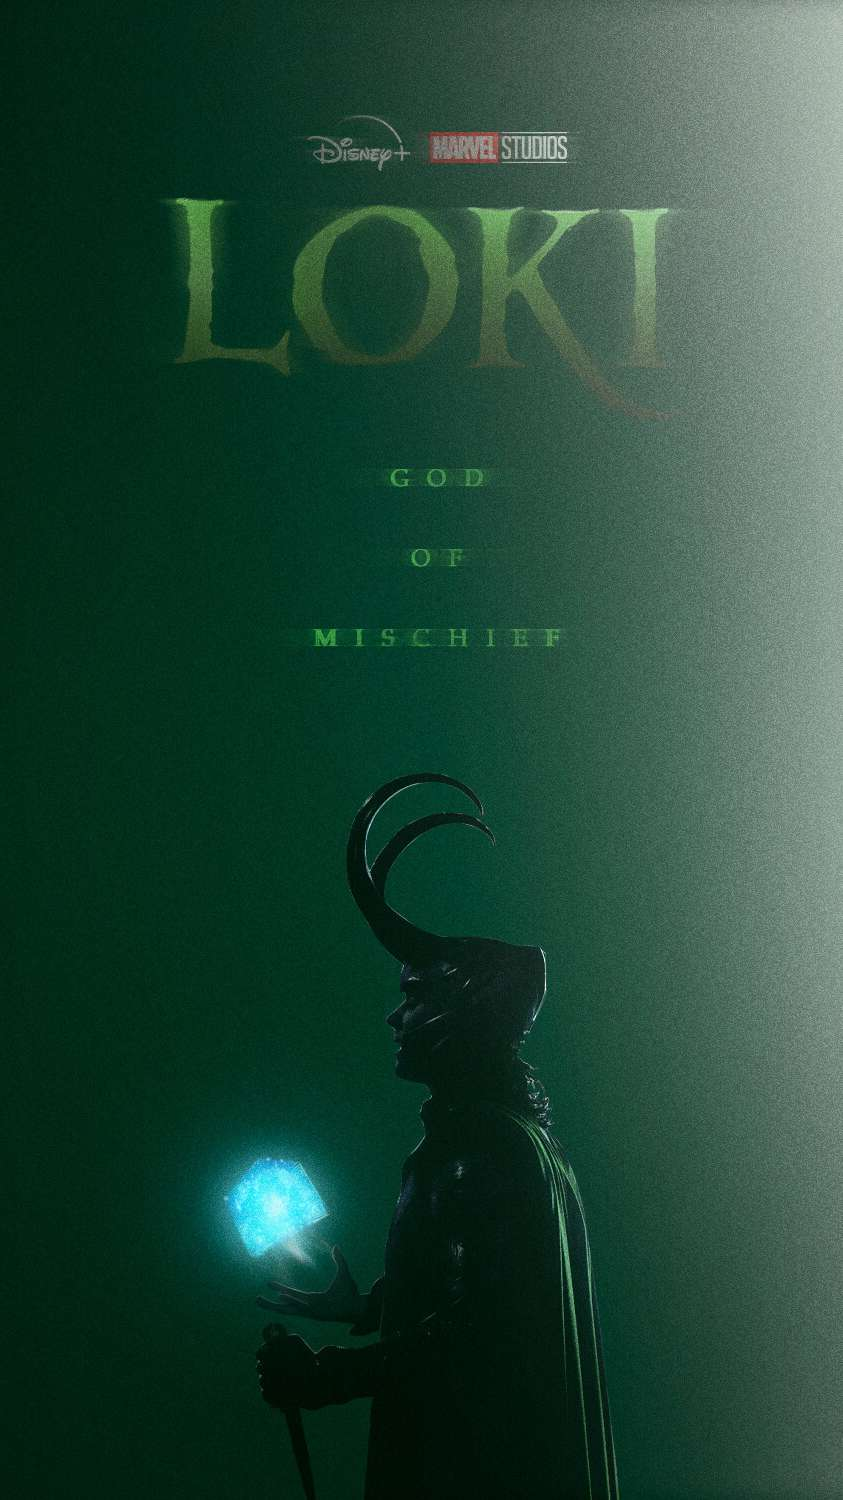 Loki the god of mischef iphone wallpaper iphone wallpapers - Loki phone wallpaper ...